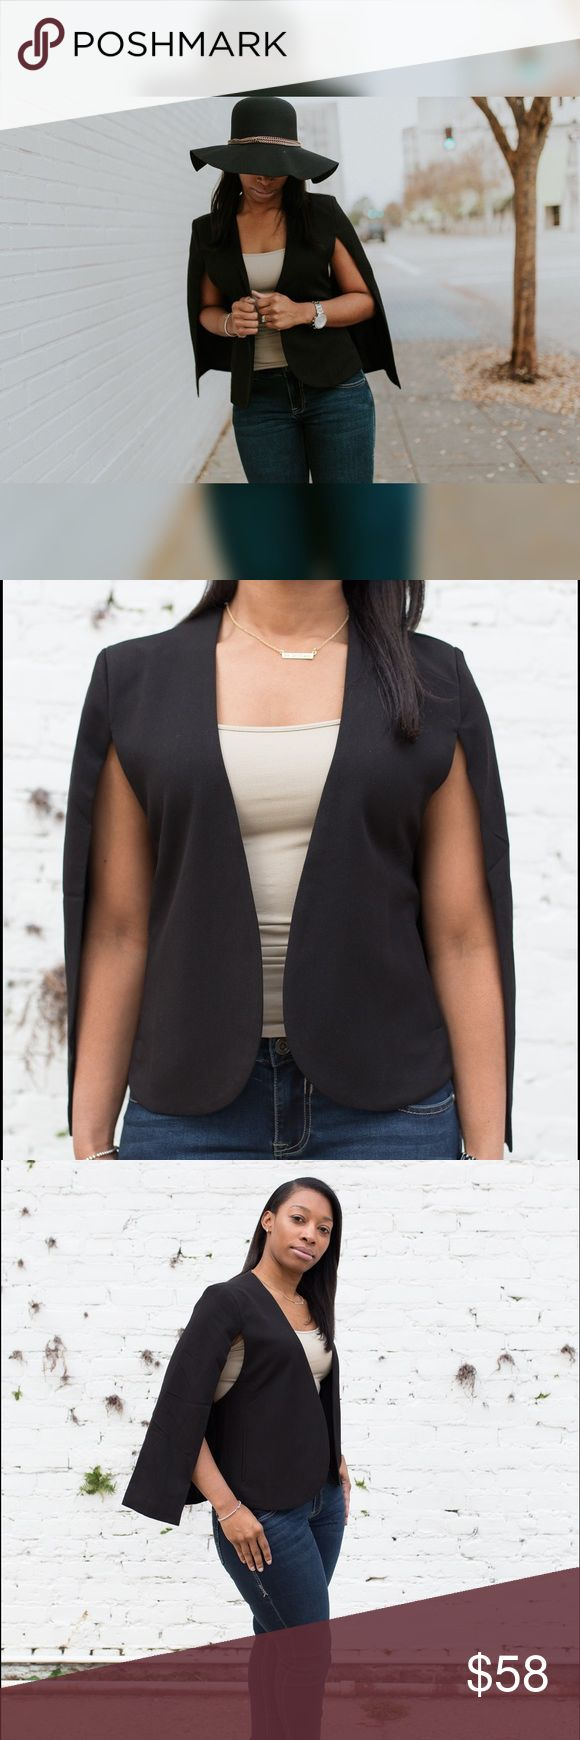 Charlie Cape Sleeve Jacket Our Charlie cape is a certified show stopper. It's a little black staple piece with class that will take any outfit either casual or formal to the next level . It's built like a blazer with half the hassle of full sleeves but serving the purpose of completing any outfit ! It's easy to slip on, and a great material built for re-wear! Jackets & Coats Capes